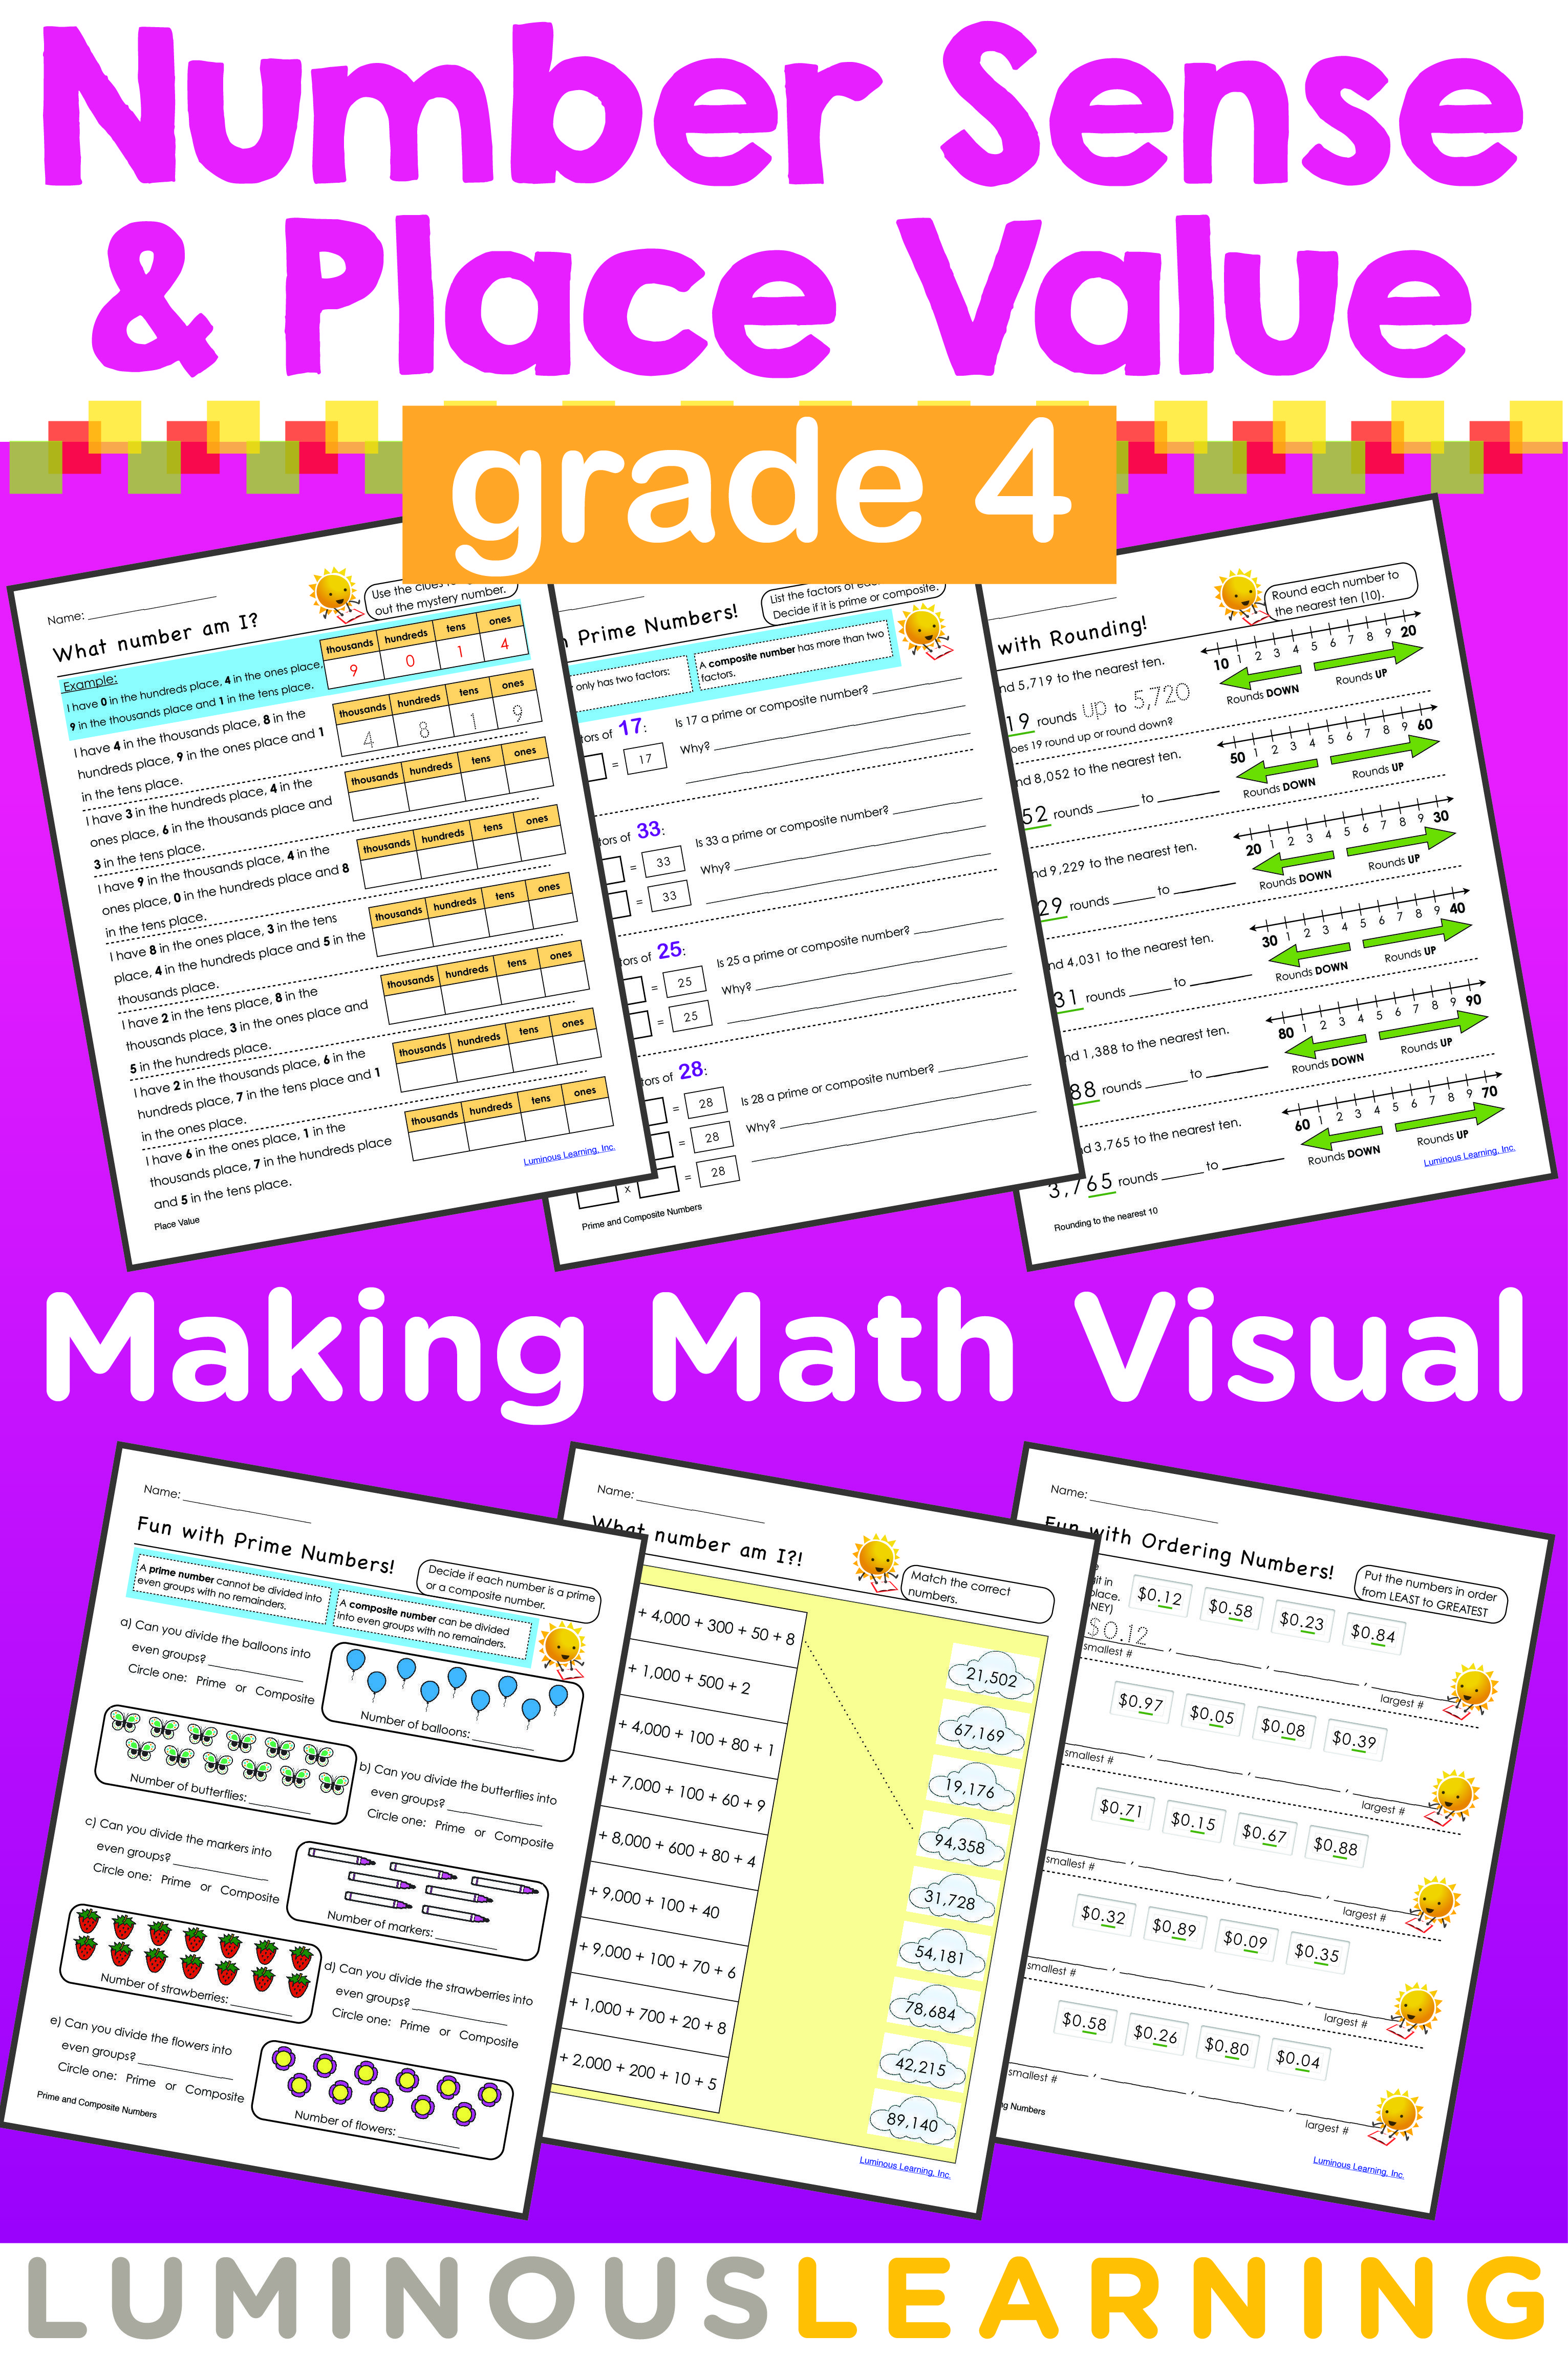 Luminous Learning Grade 4 Number Sense And Place Value Workbook Helps Build Confidence With